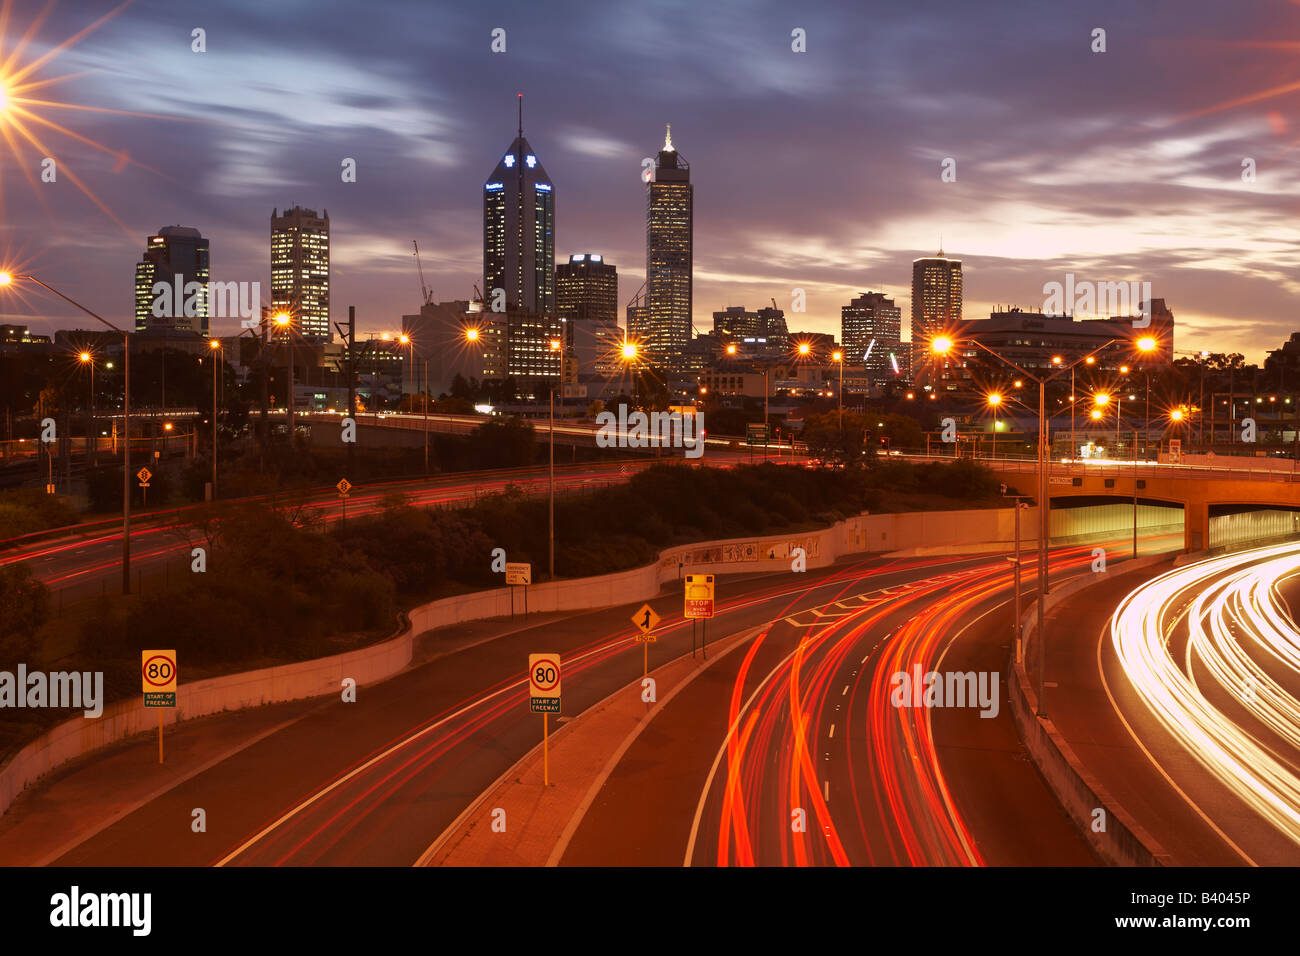 City of Perth Western Australia with Graham Farmer Freeway in foreground - Stock Image